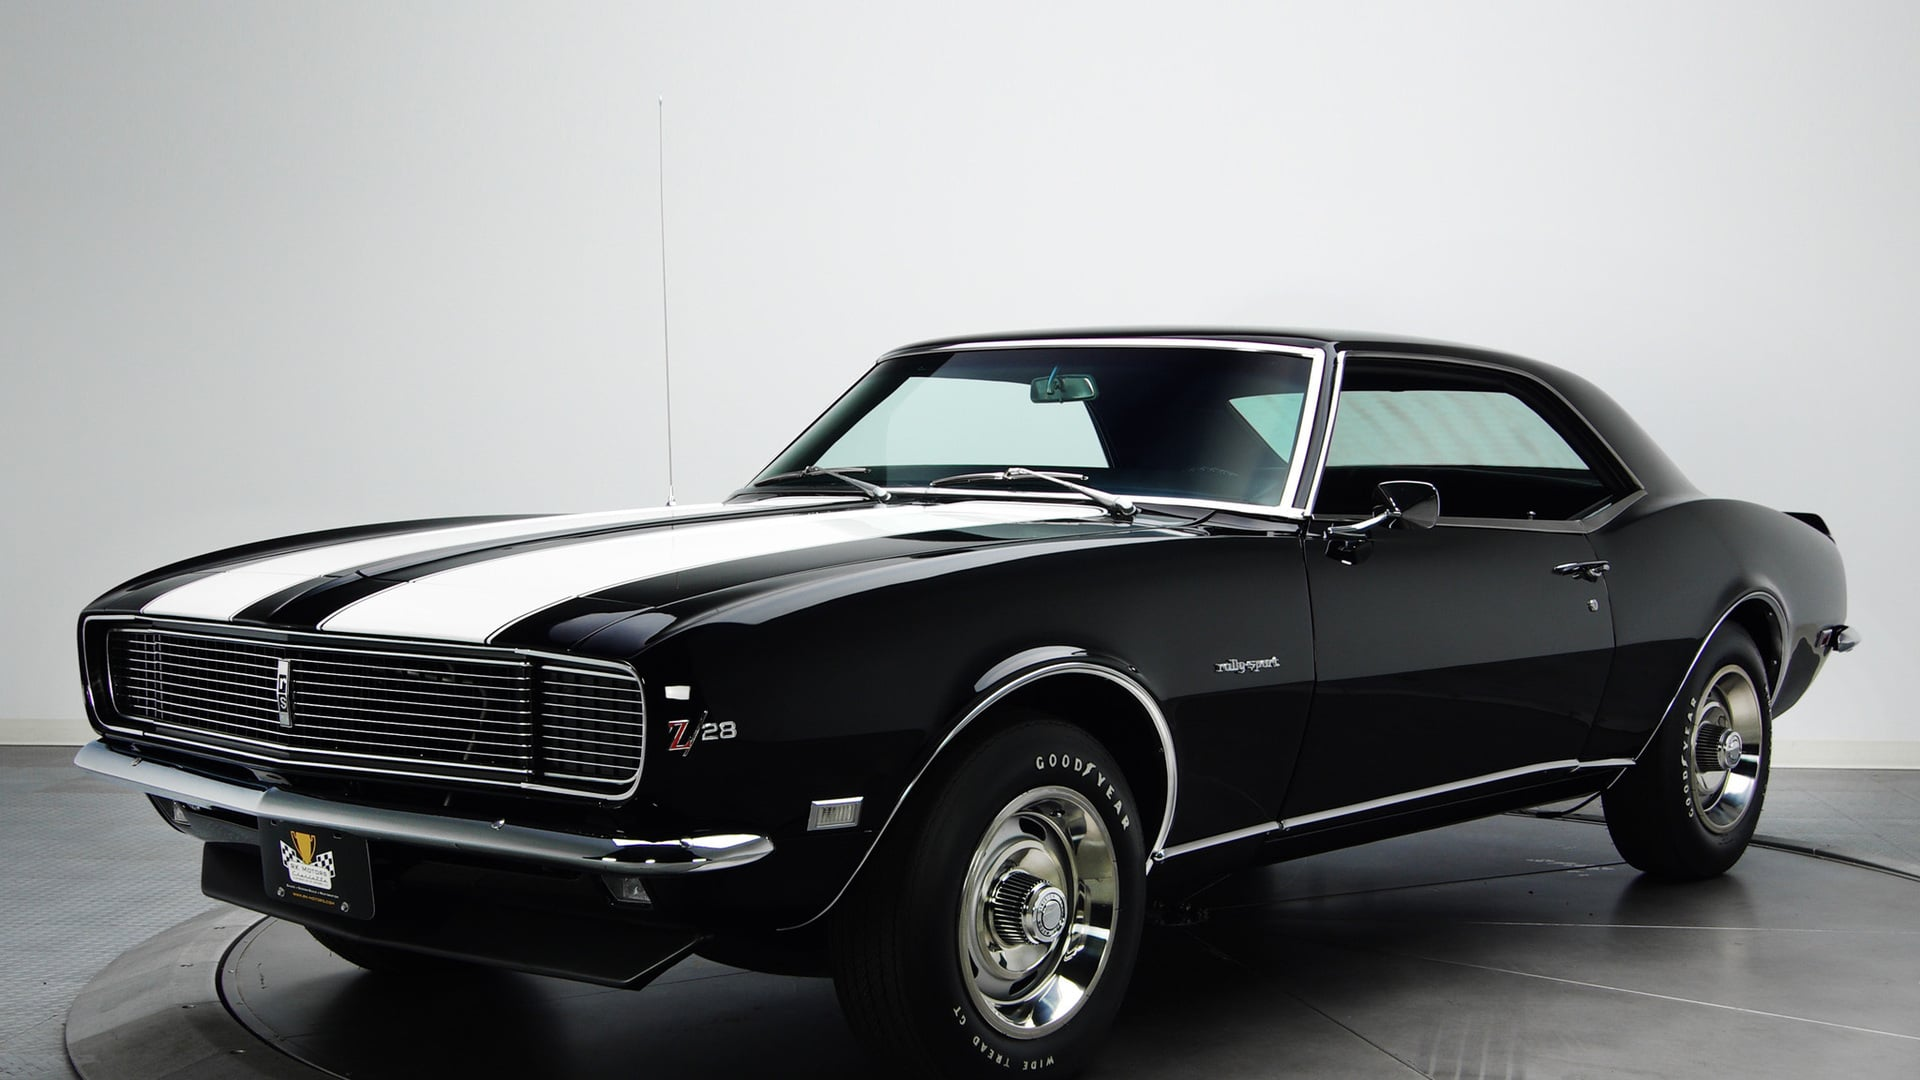 36 chevrolet camaro ss 1969 wallpapers hd - Camaro z28 ...